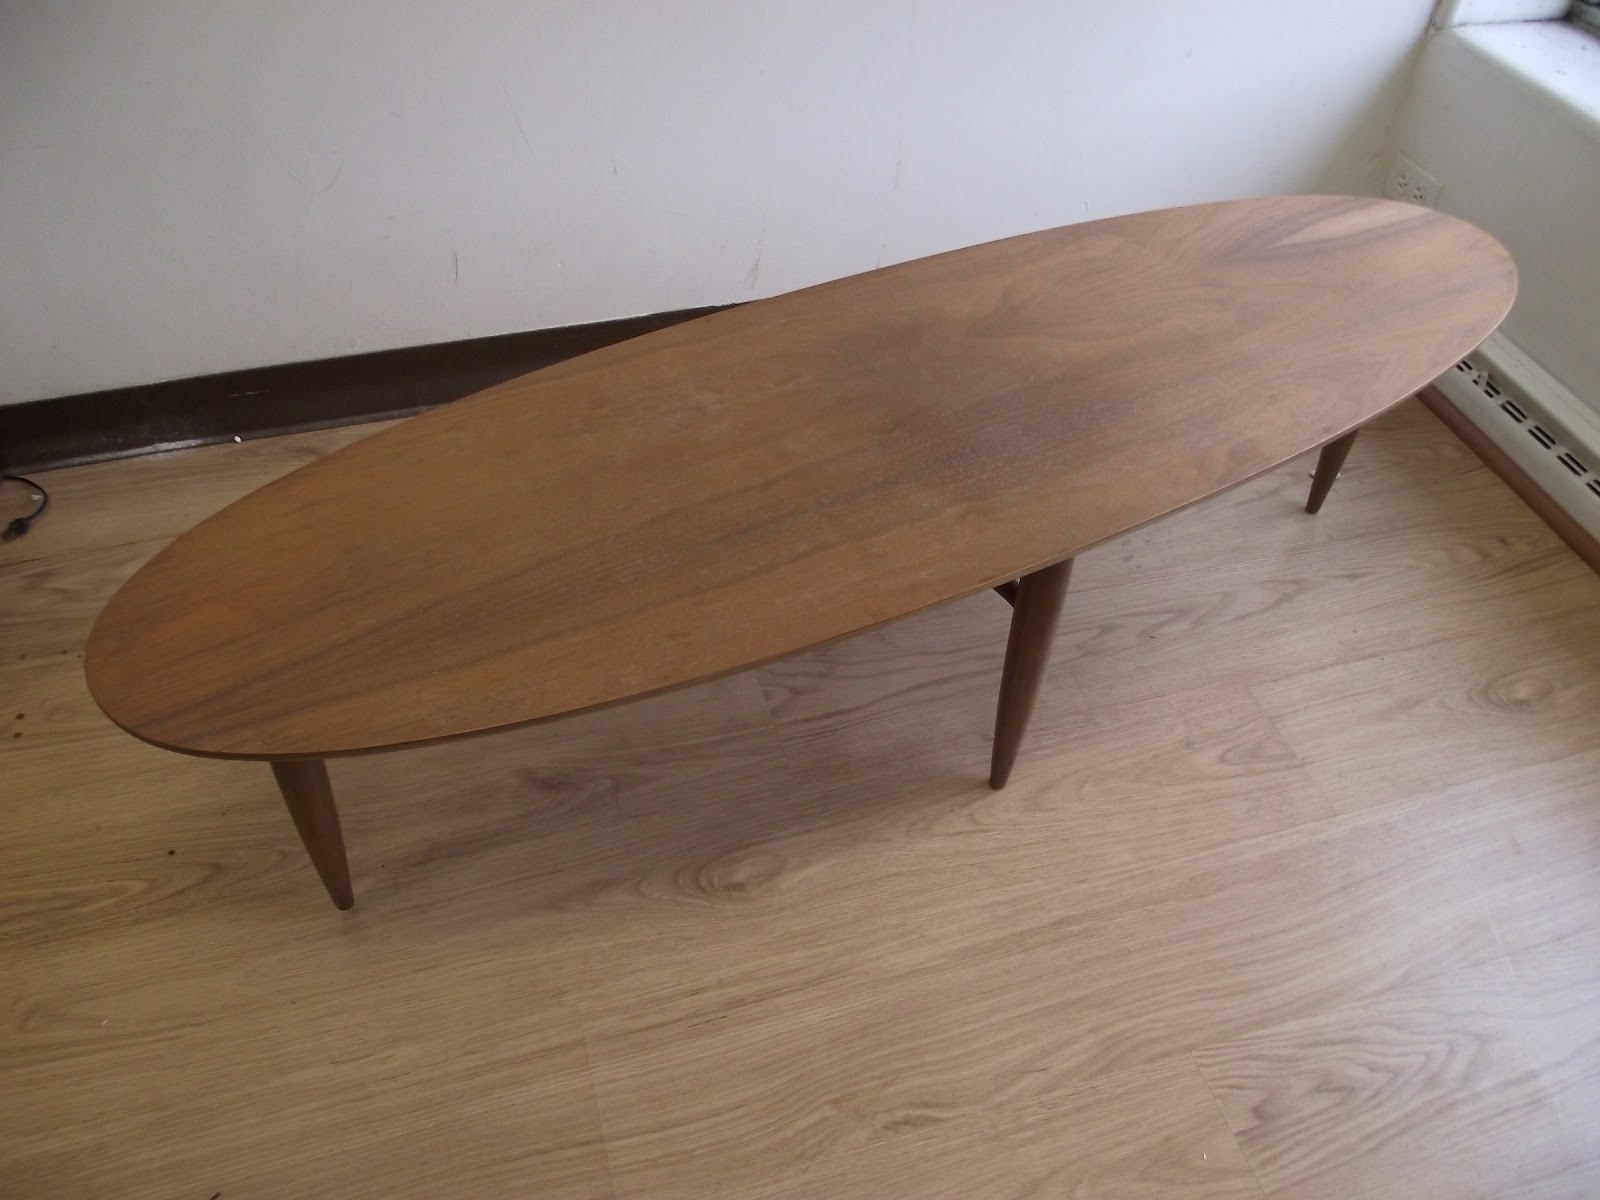 Surfboard Tables For Sale Surfboard Tables On Pinterest Surfboard Table Surfboard